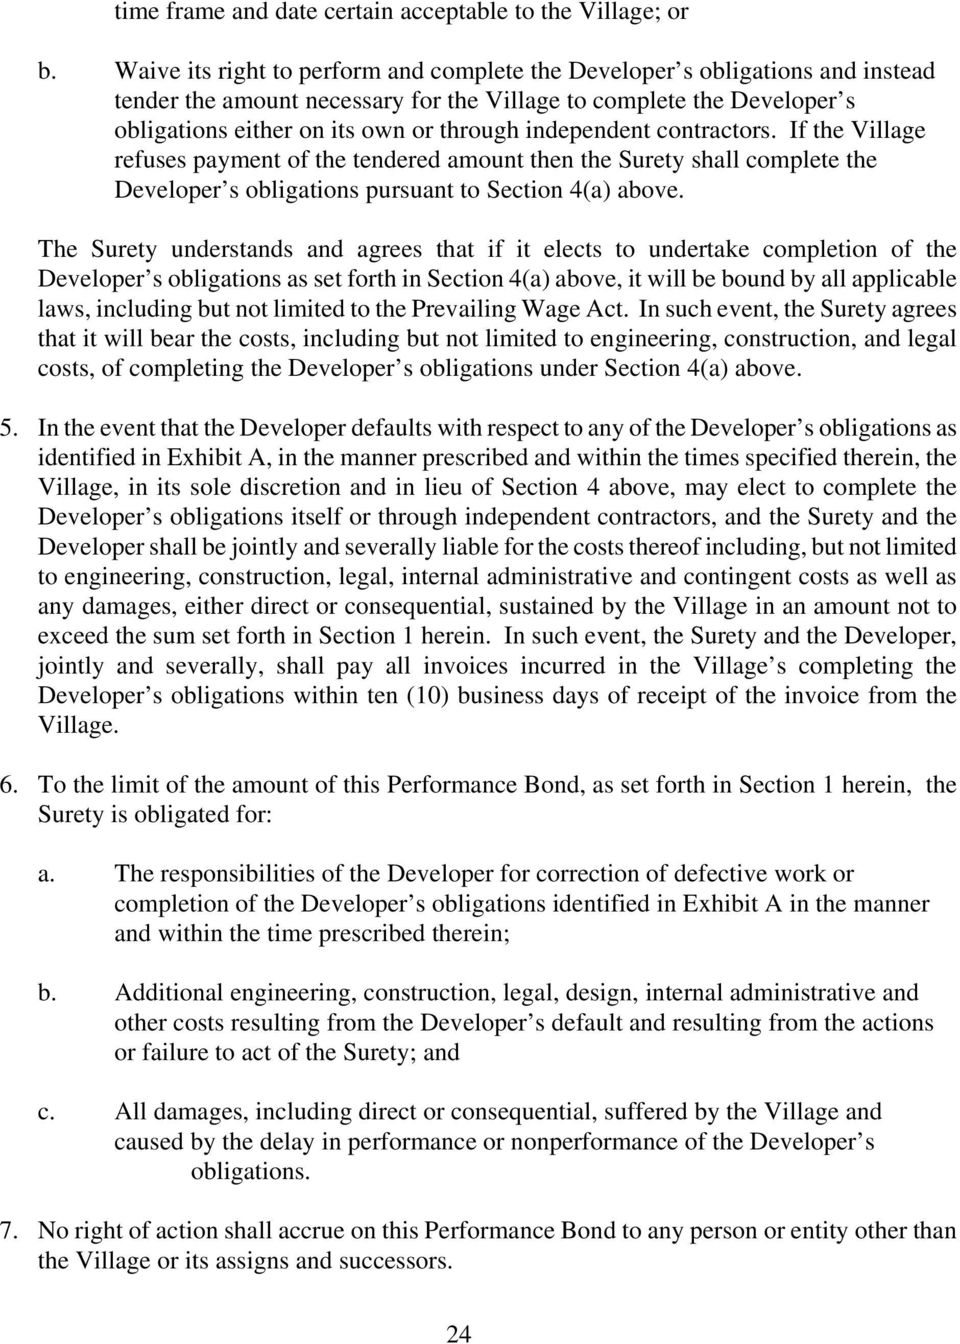 independent contractors. If the Village refuses payment of the tendered amount then the Surety shall complete the Developer s obligations pursuant to Section 4(a) above.